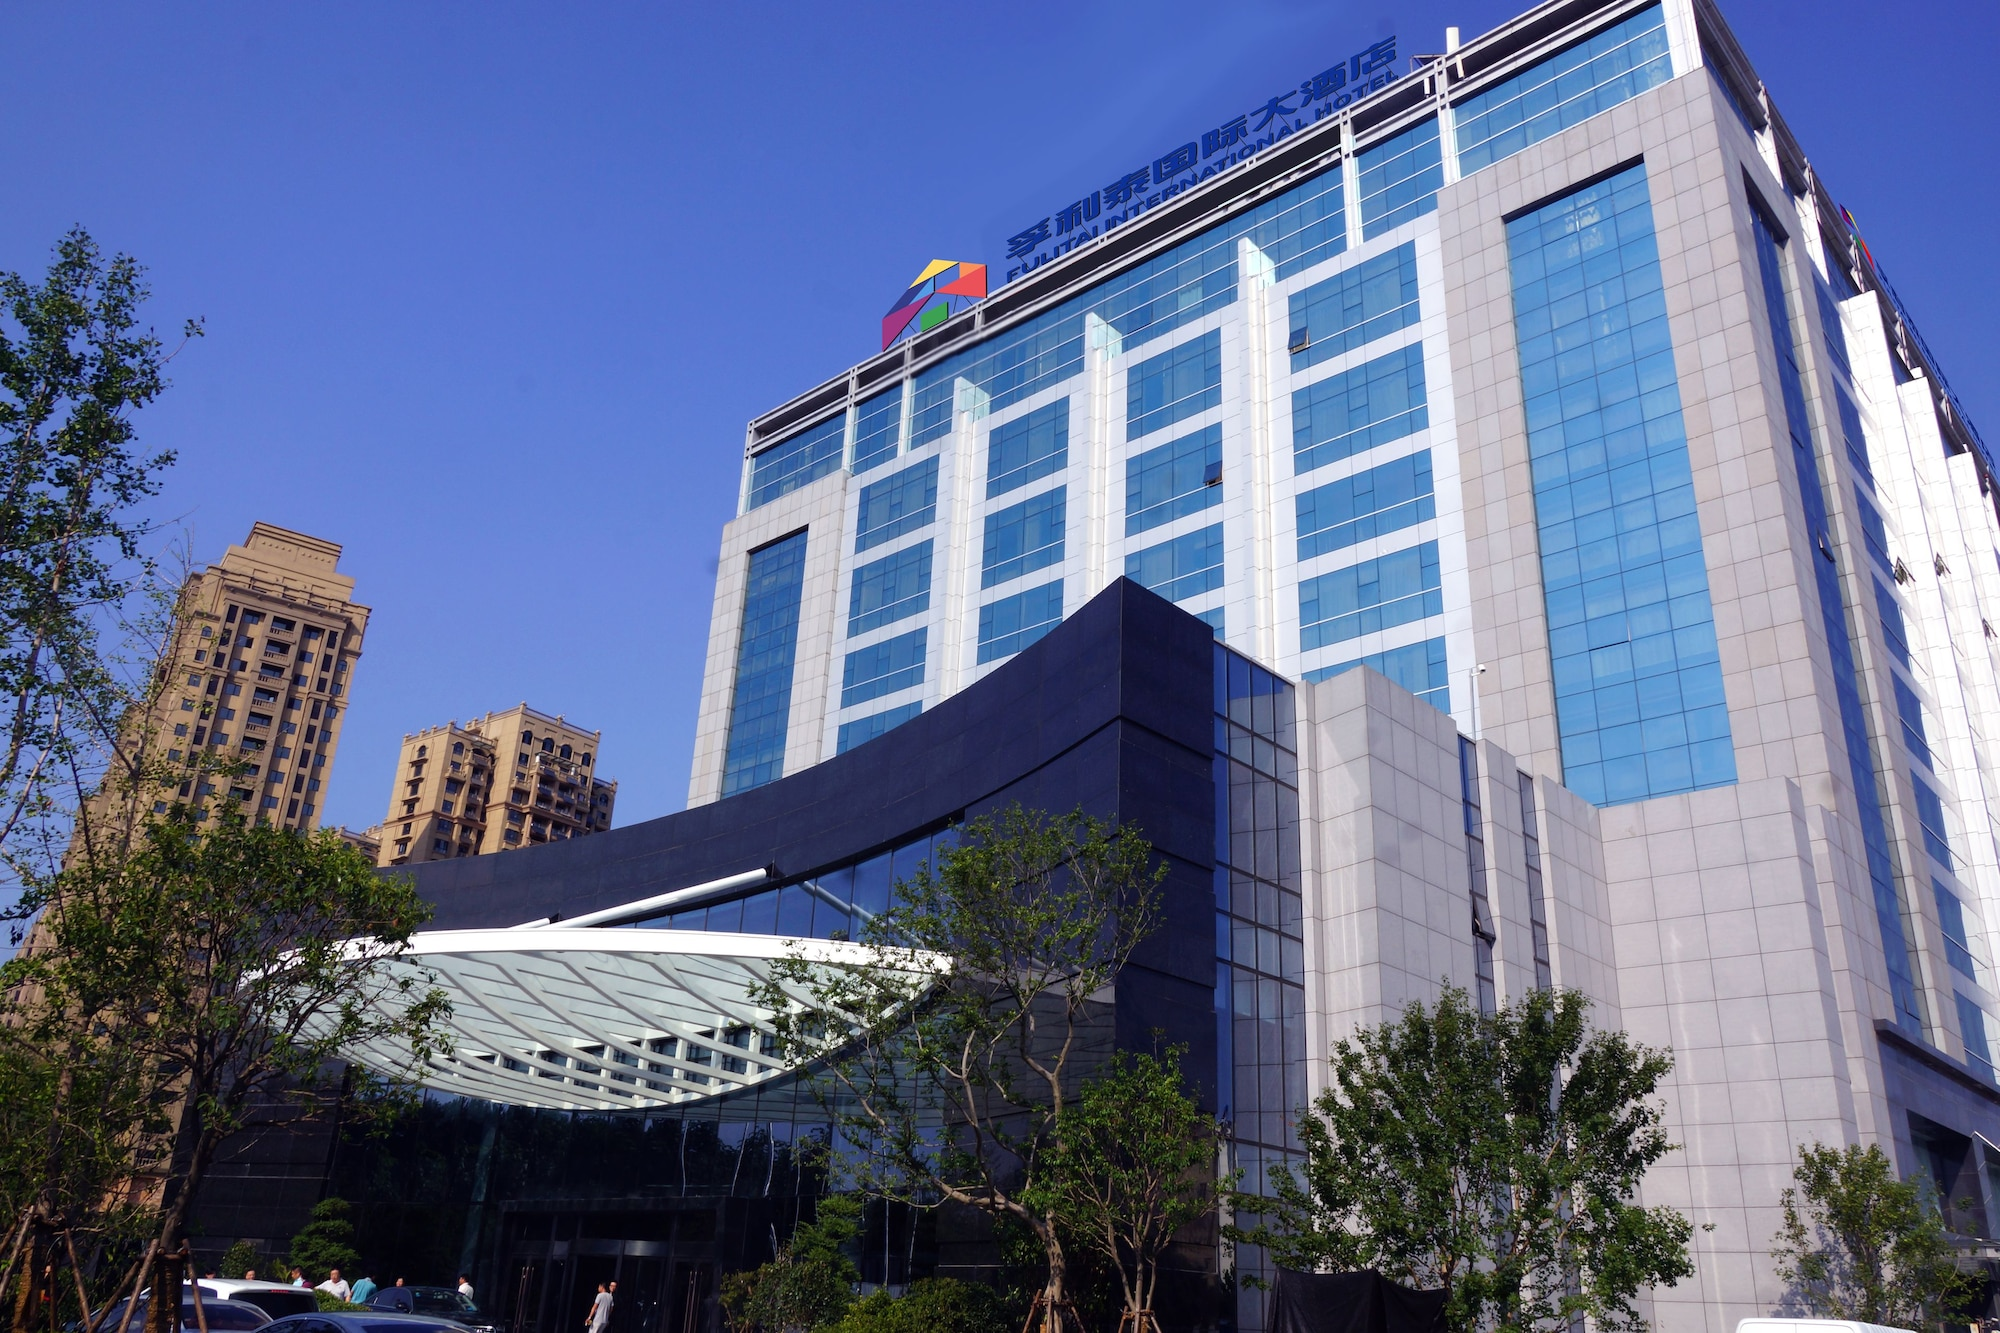 Fulitai International Hotel Yantai, Yantai